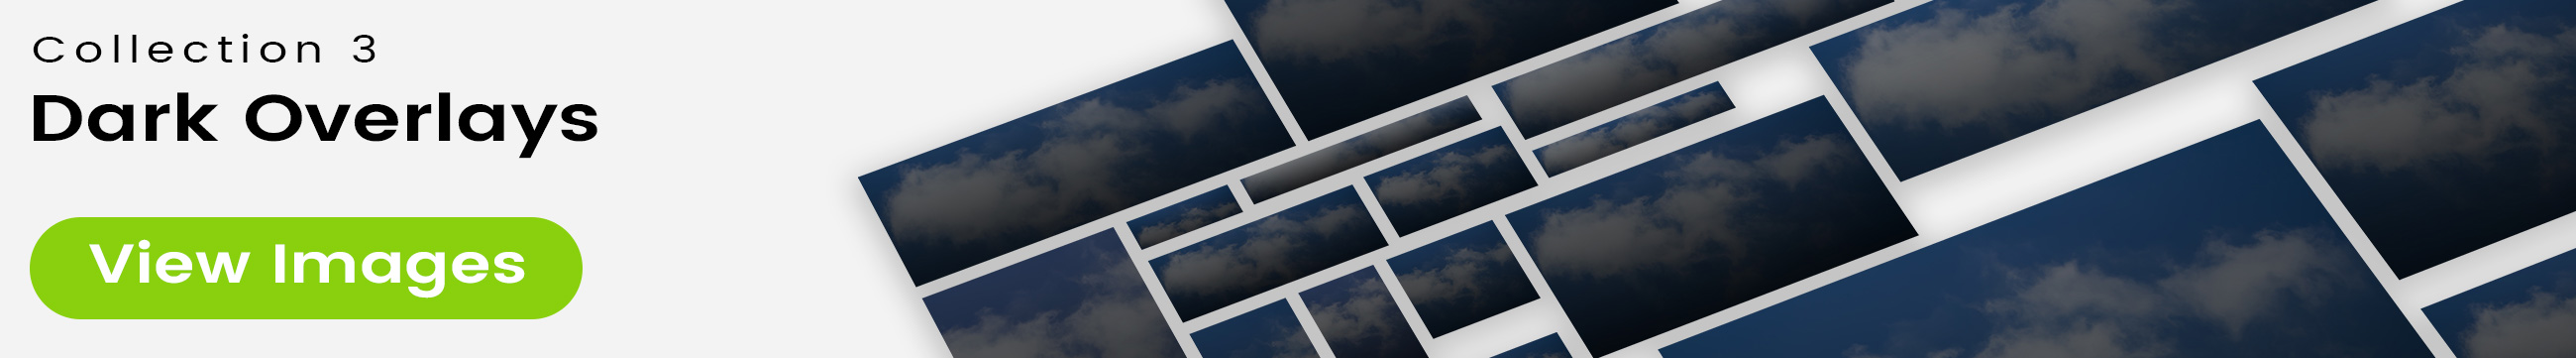 See 25 bonus images included with clouds stock image 9480. Collection 3 of 4 features a dark overlay design.